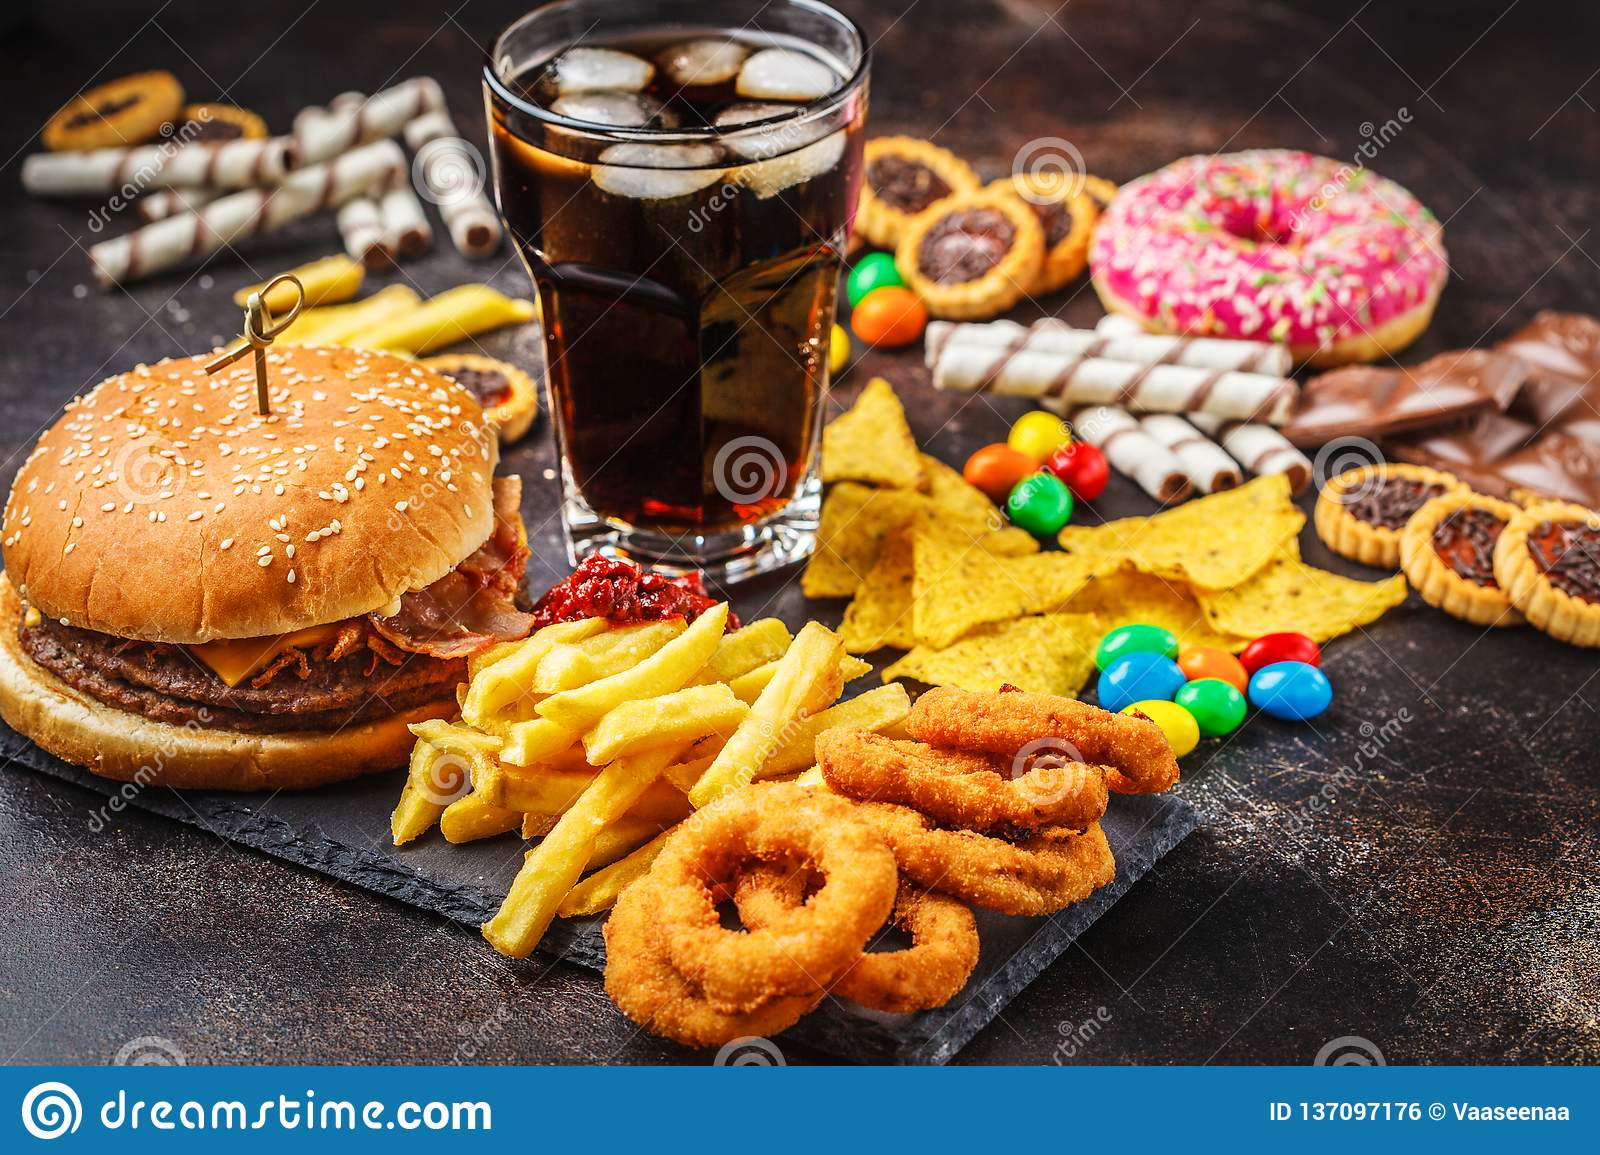 Junk food concept. Unhealthy food background. Fast food and sugar. Burger, sweets, chips, chocolate, donuts, soda